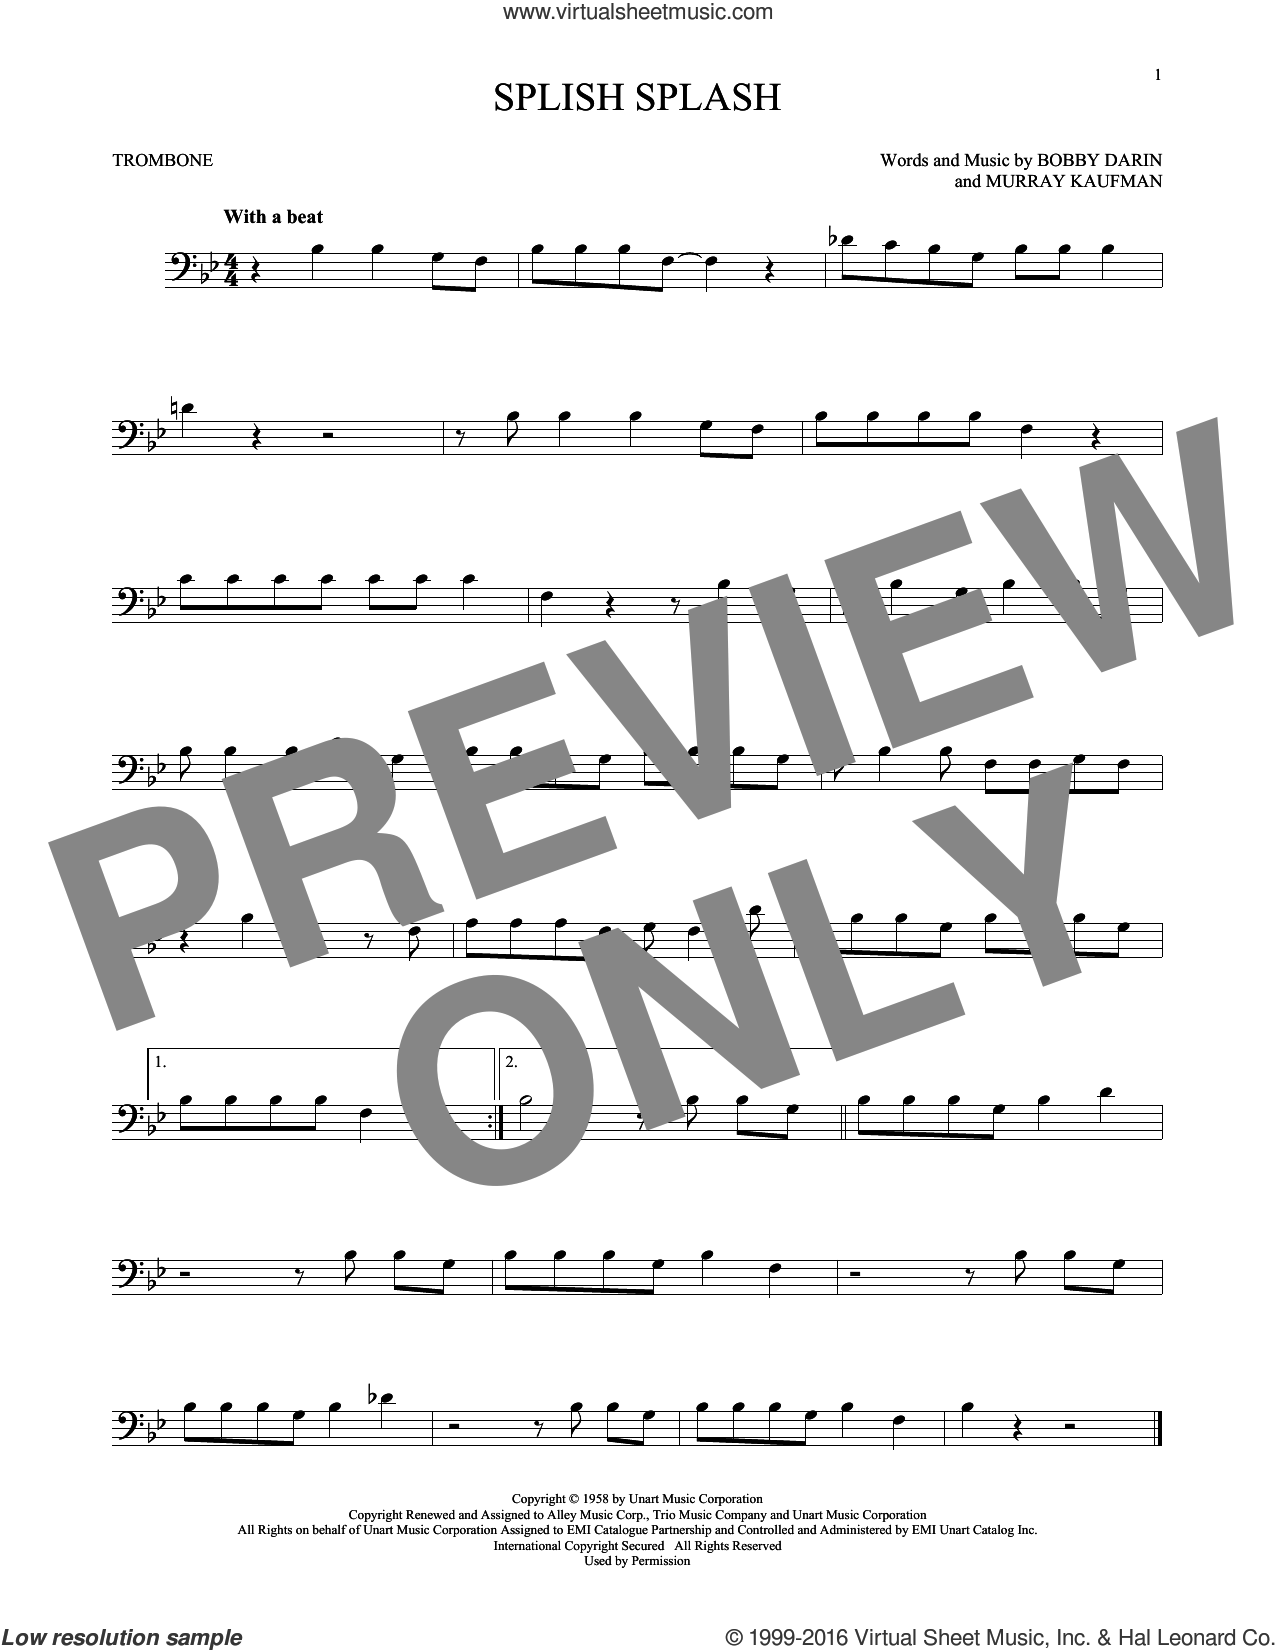 Splish Splash sheet music for trombone solo by Bobby Darin and Murray Kaufman, intermediate skill level